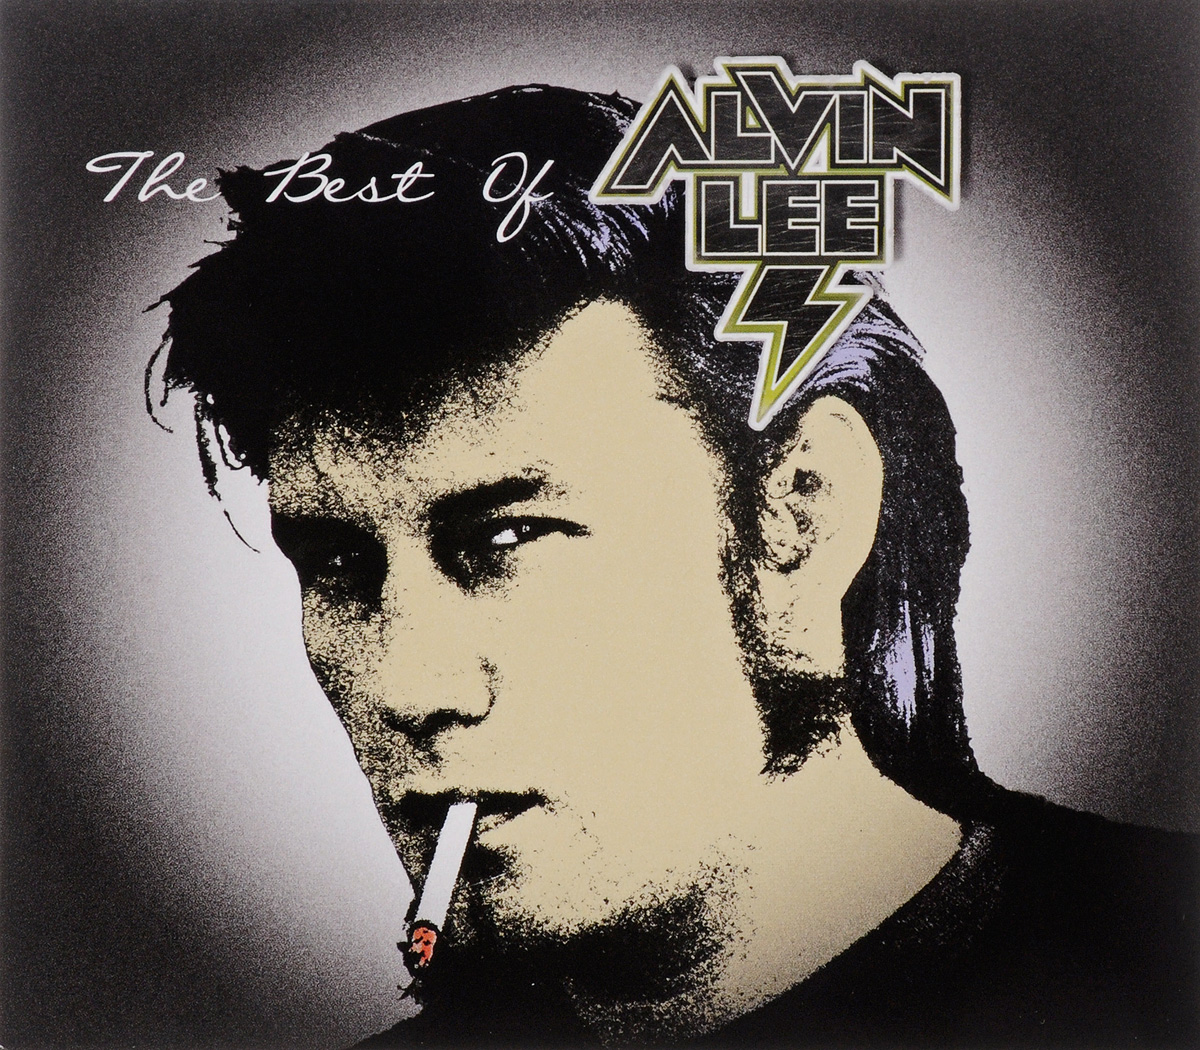 Alvin Lee. The Best Of Alvin Lee (2 CD)